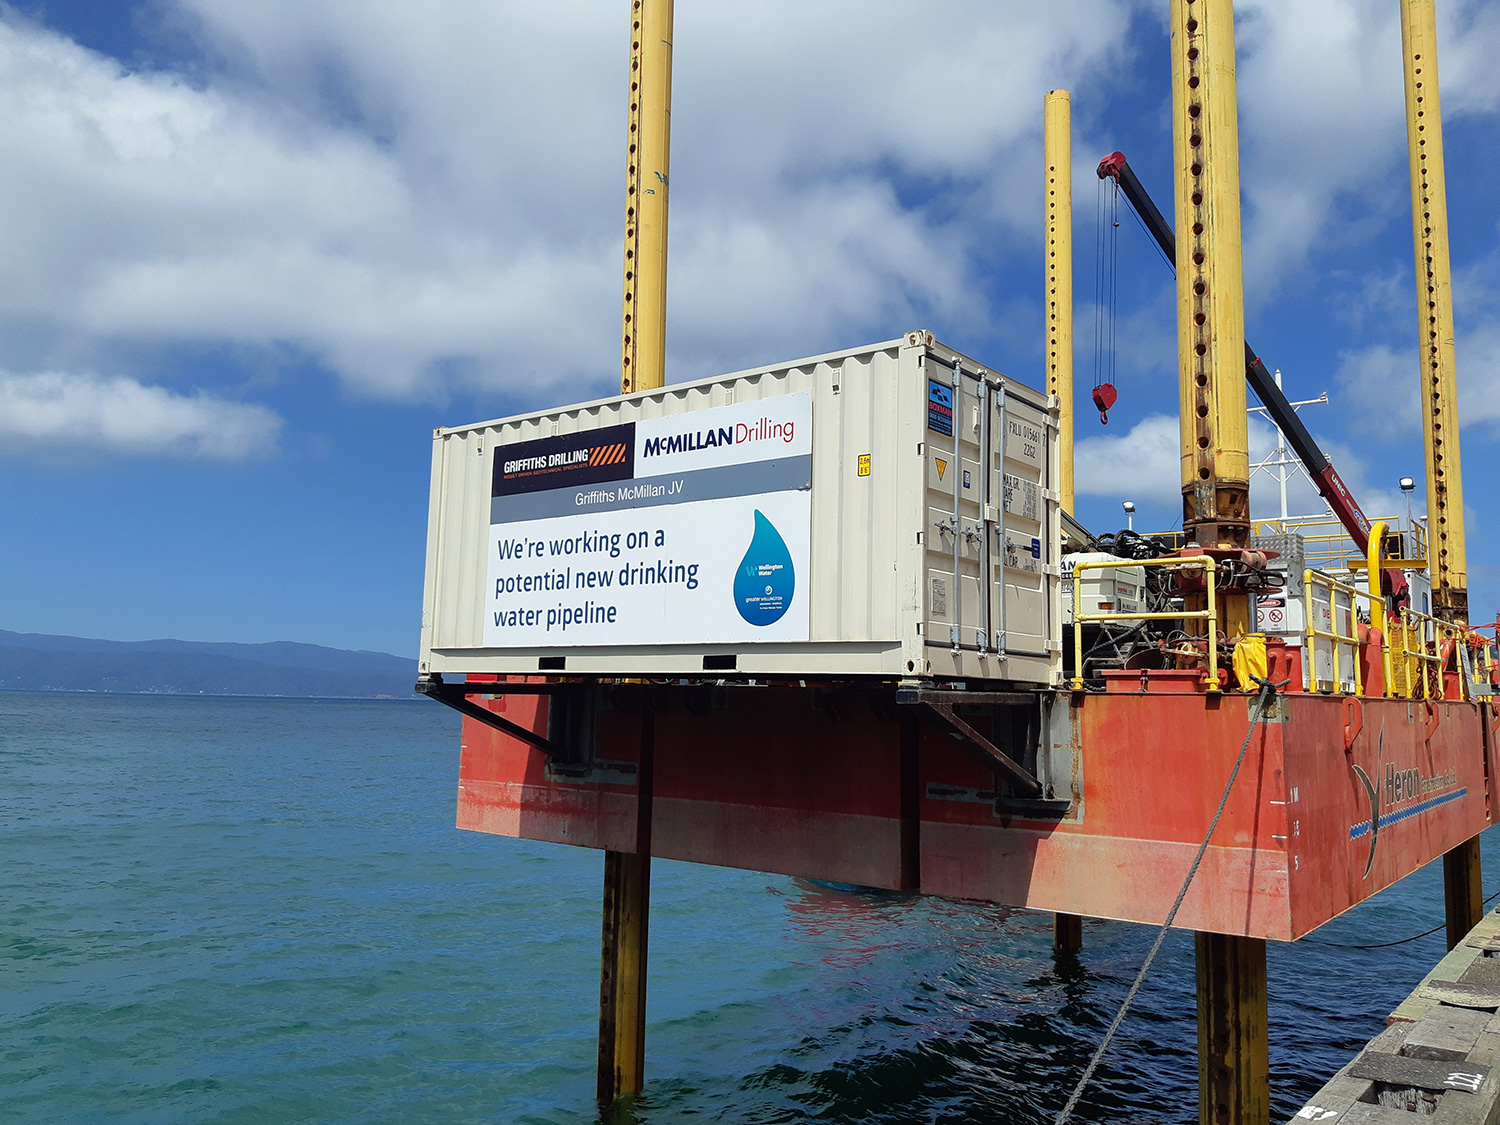 https://drilling.co.nz/cms/wp-content/uploads/2020/03/Site-Welly-Water-1-S.jpg